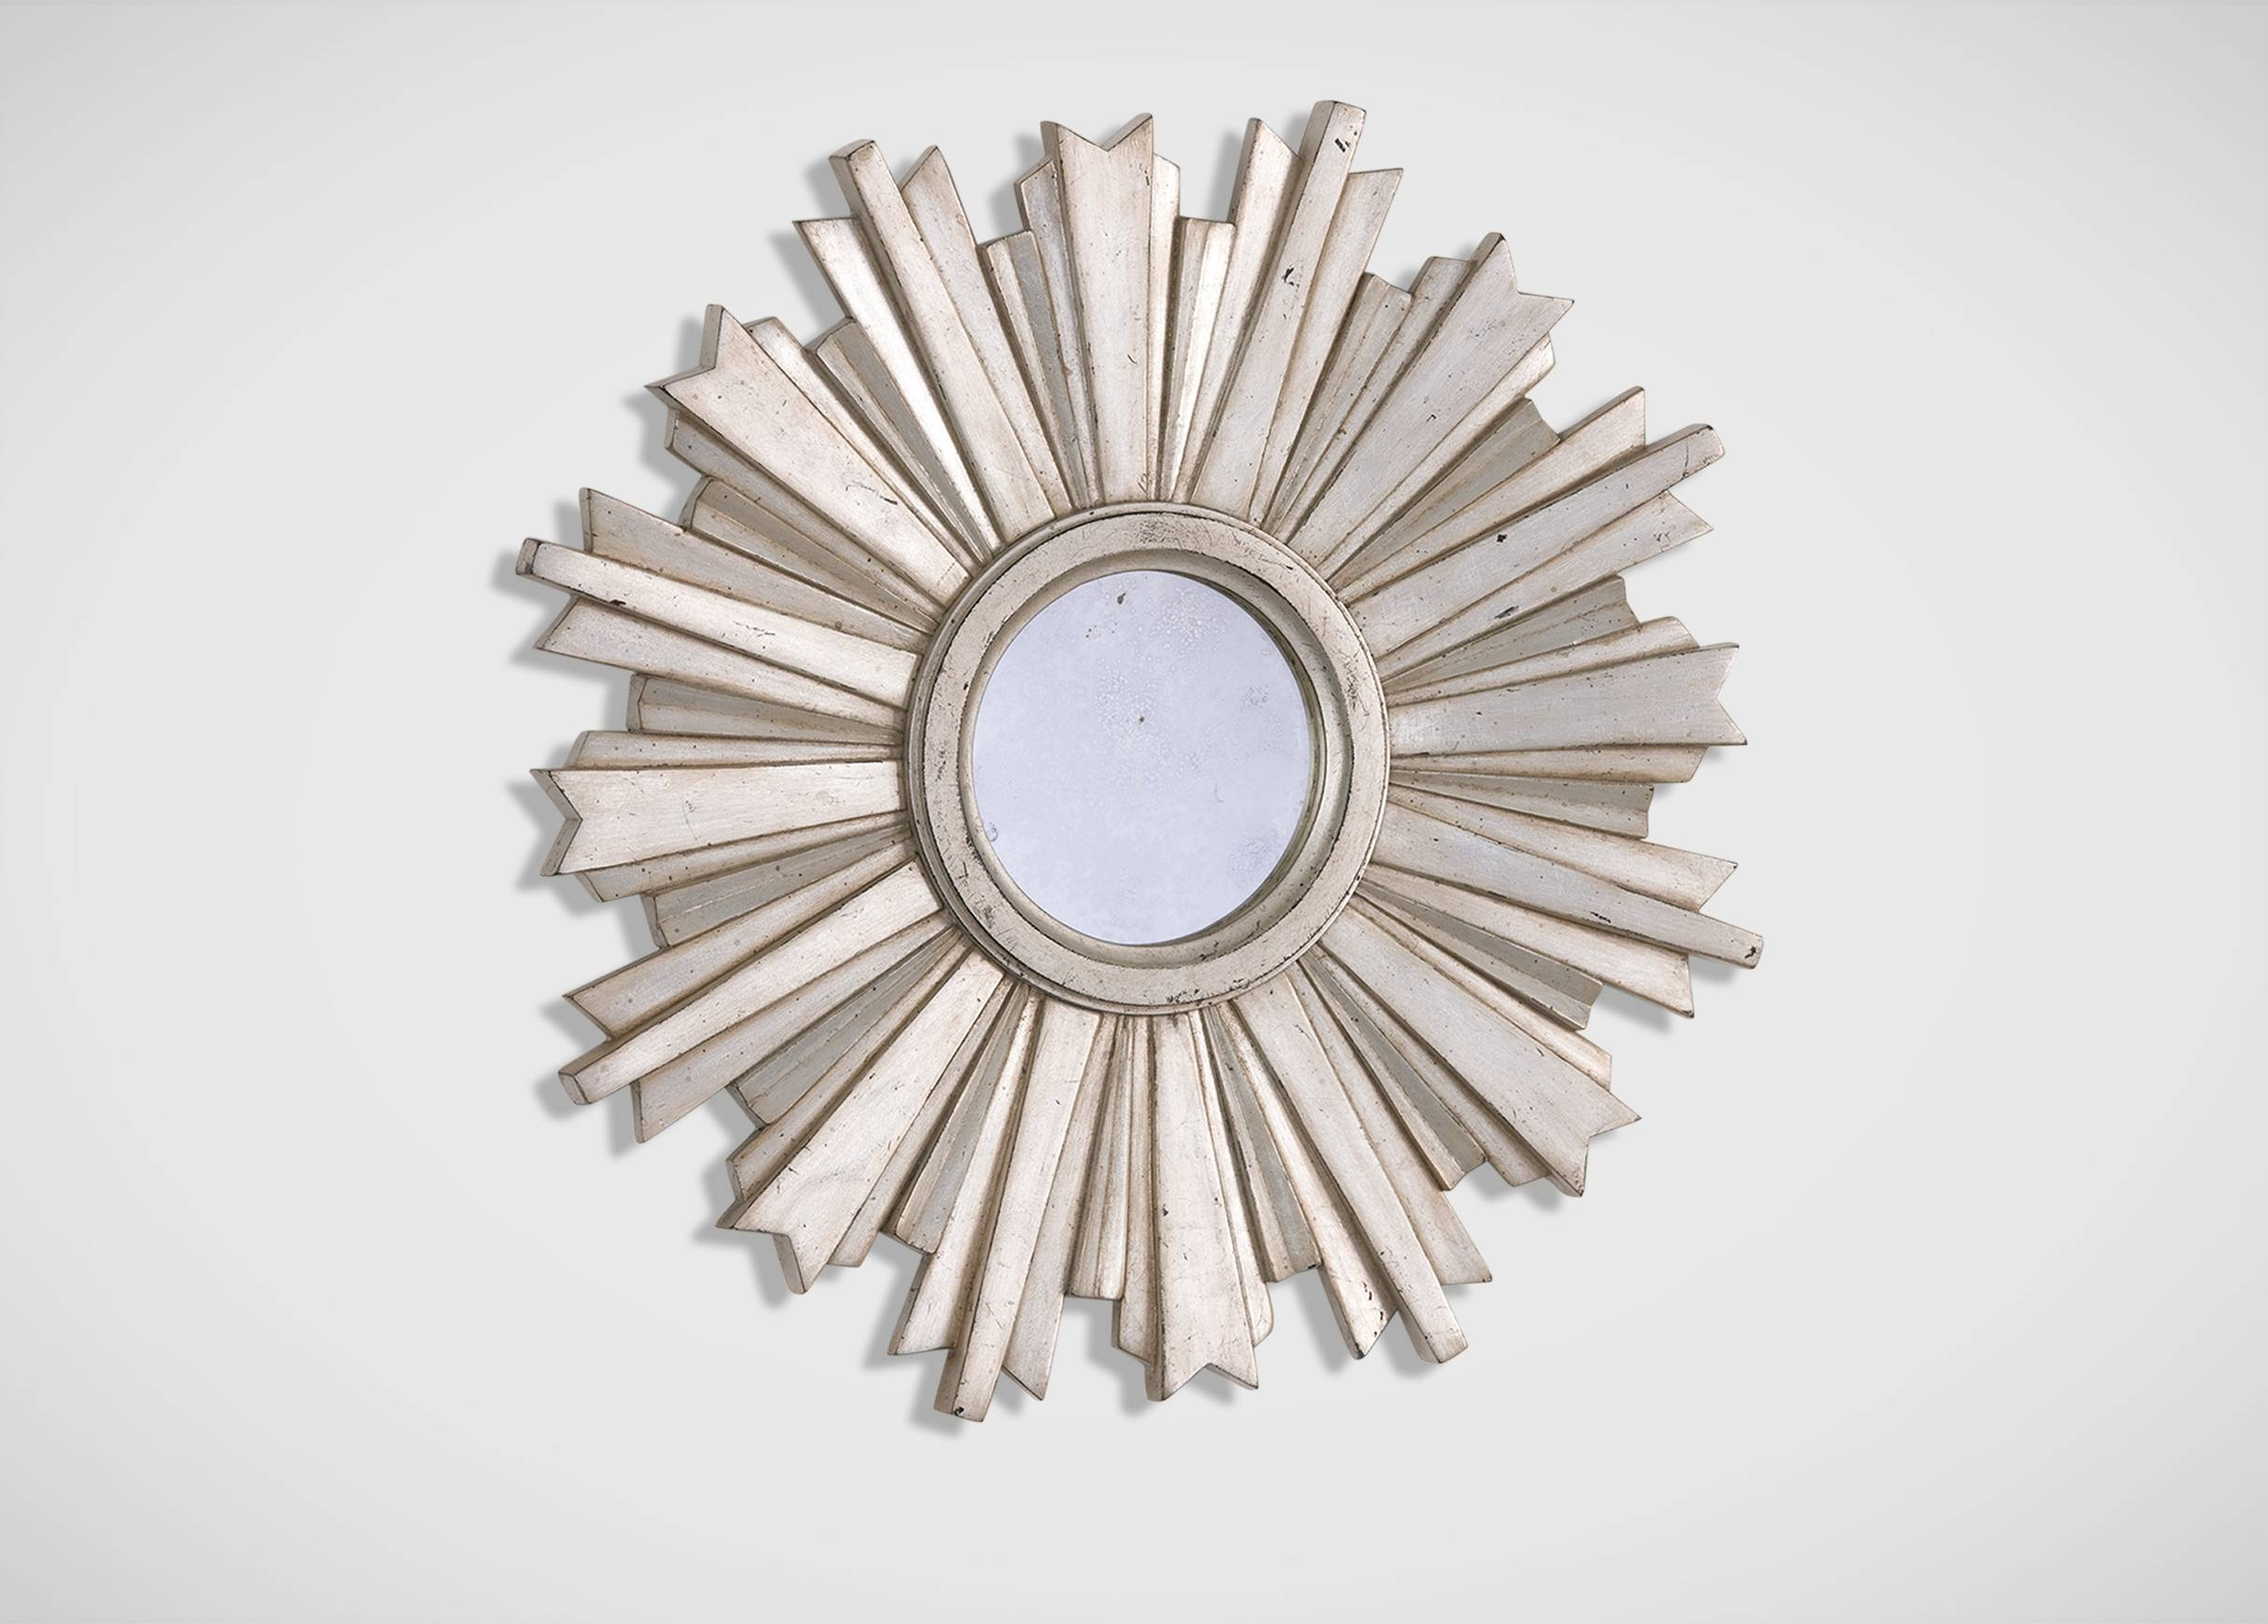 Mini Silver Starburst Mirror | Mirrors pertaining to Small Silver Mirrors (Image 16 of 25)